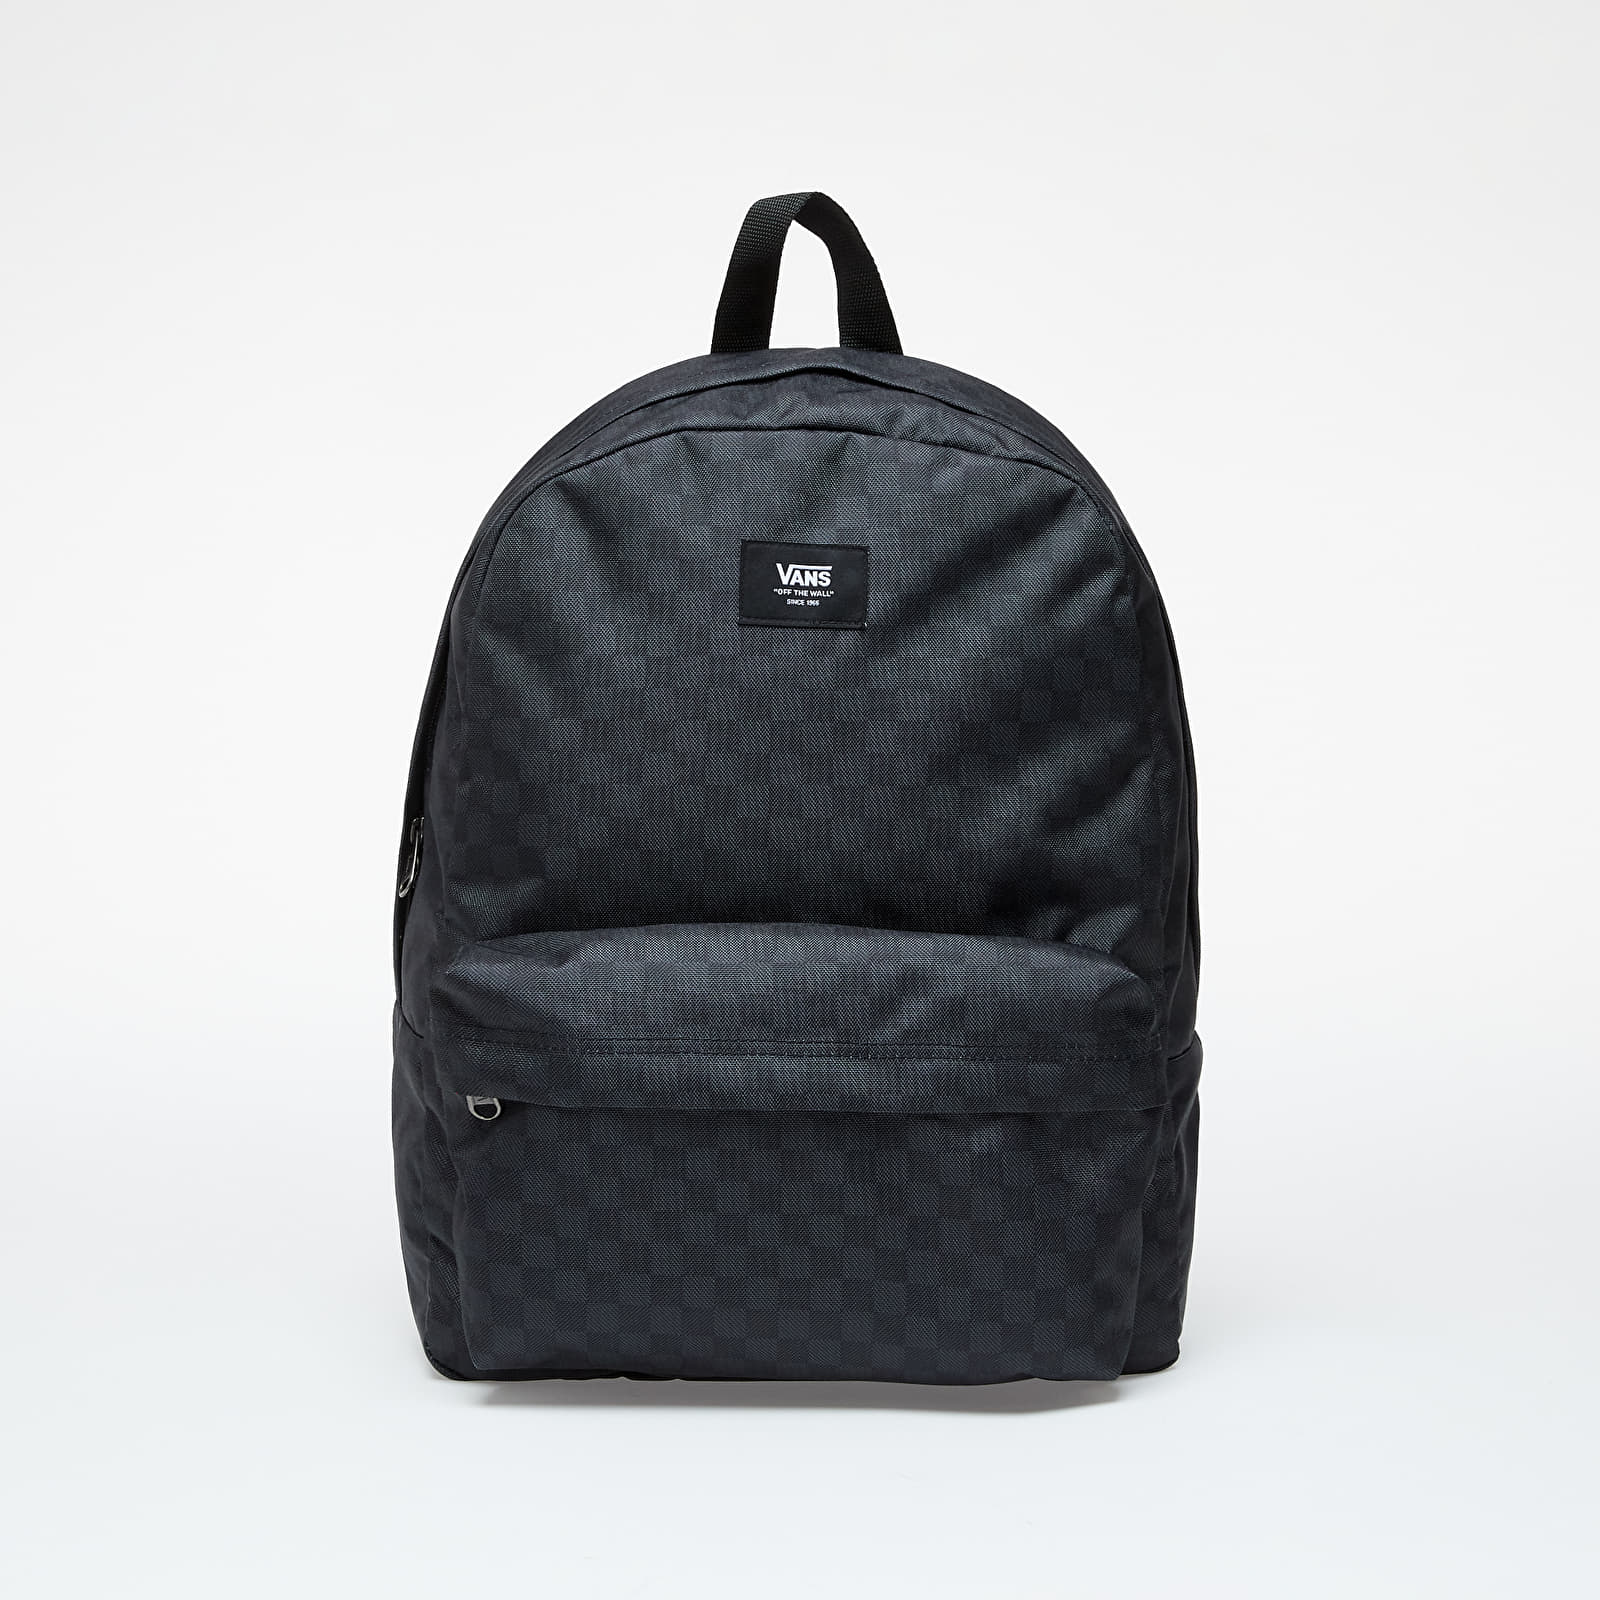 Σακίδια Vans Old Skool III Backpack Black/ Charcoal